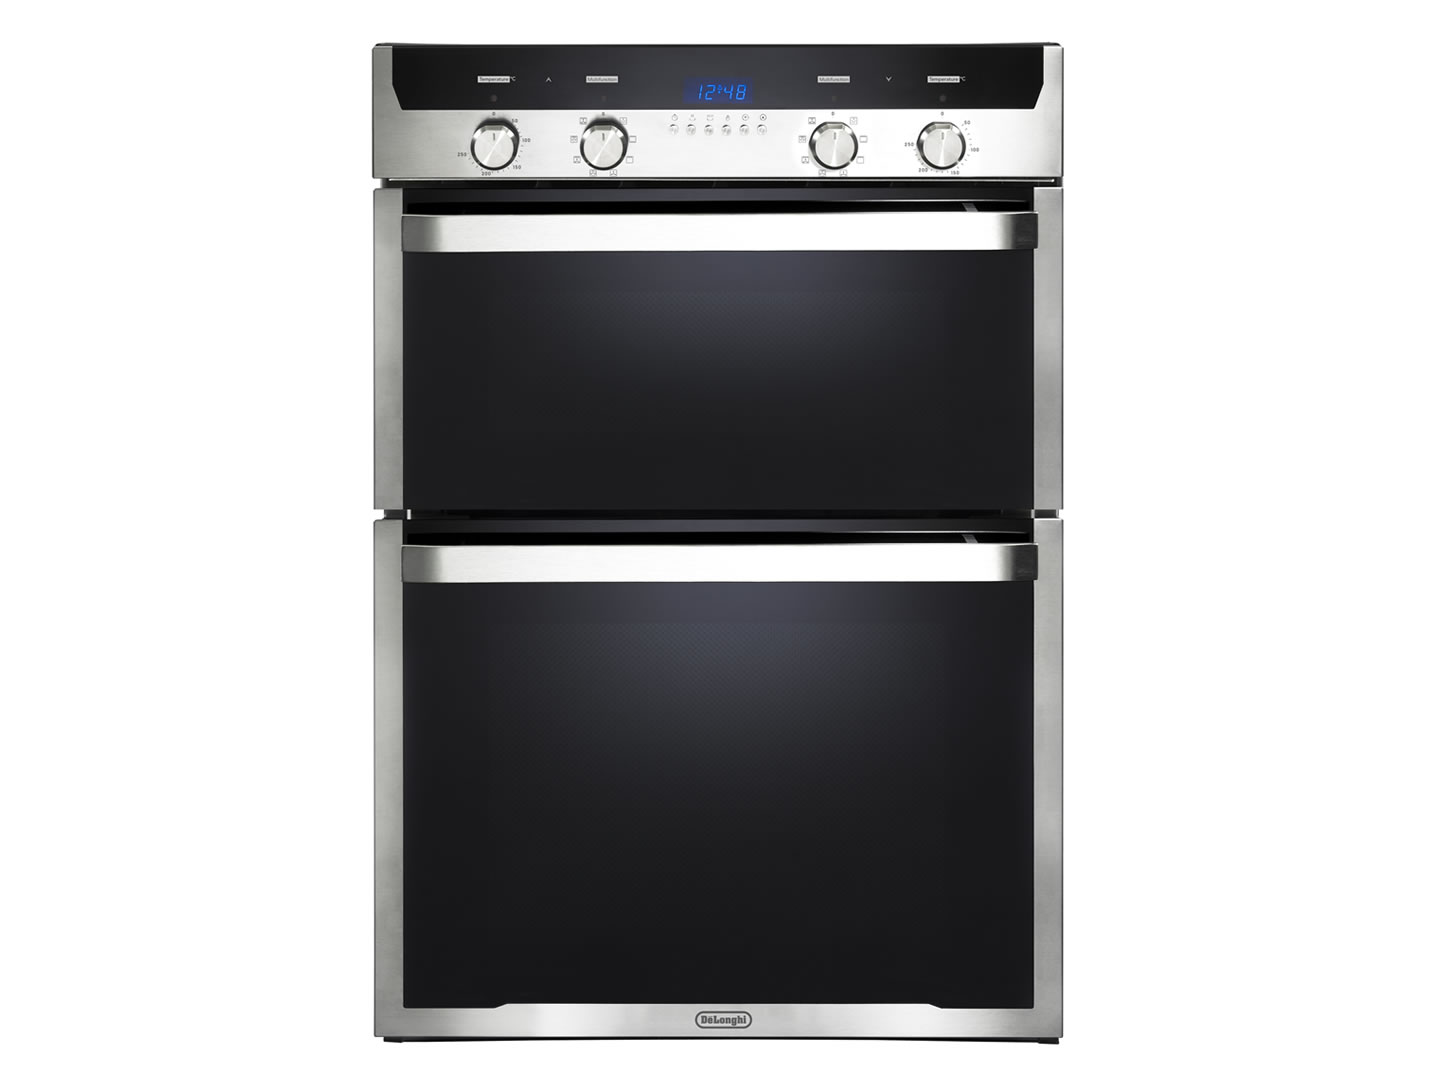 Delonghi 60cm Multi Function Double Wall Oven Buy Online